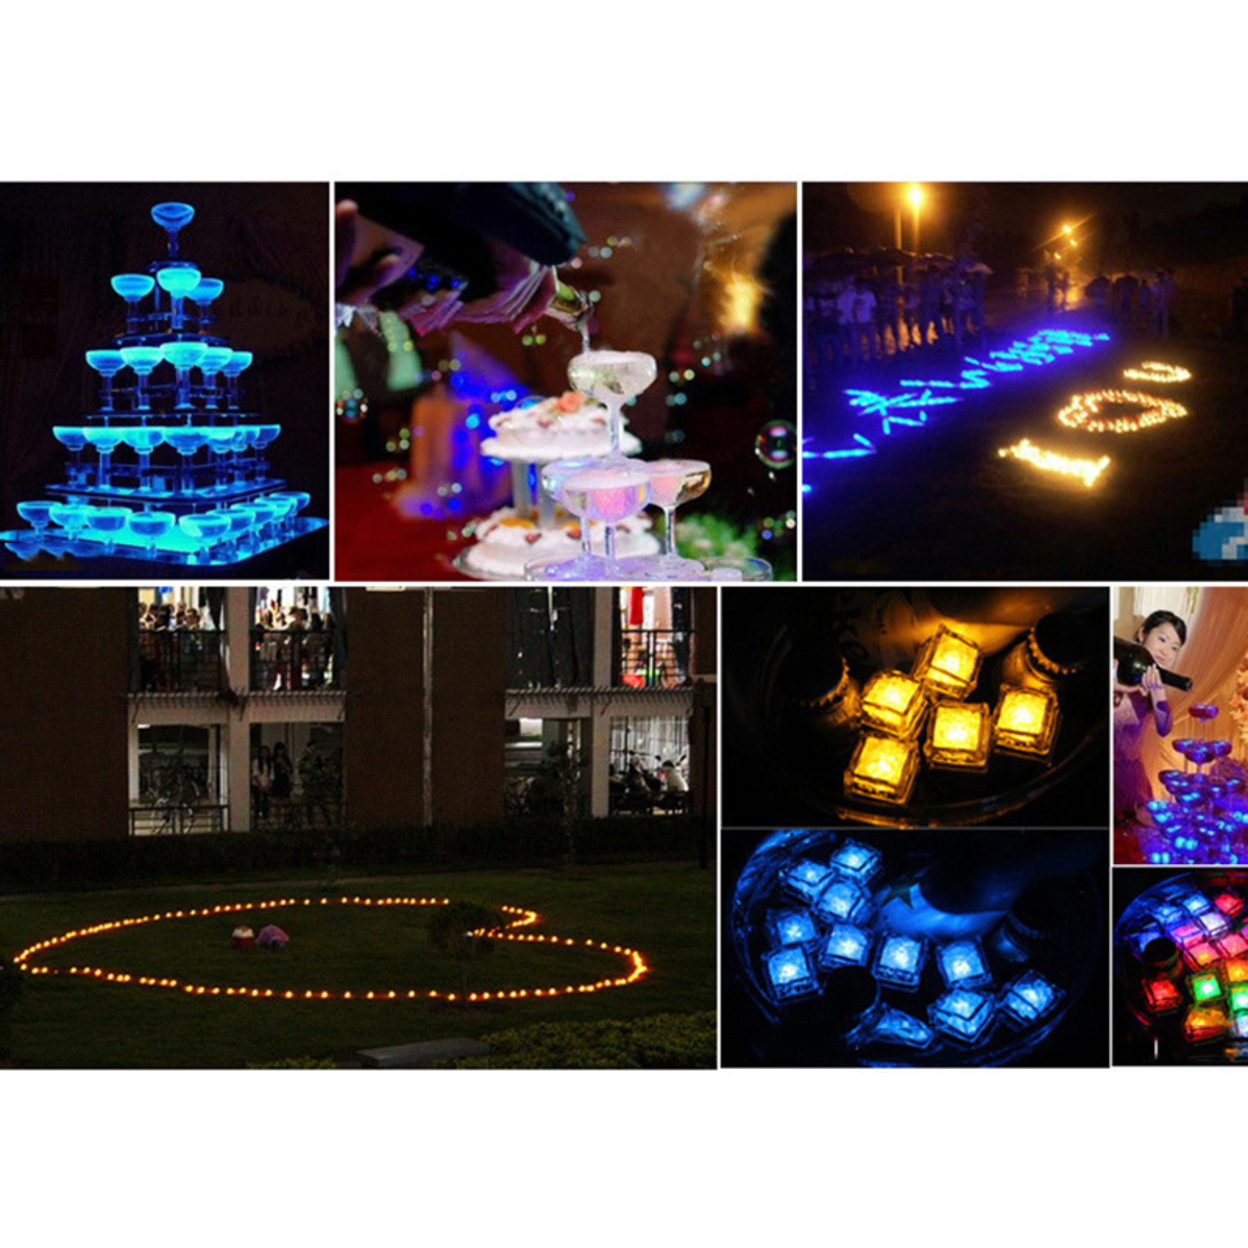 Party Decoration Blue 12pcs LED Flashing Lights Ice Cubes Water Sensor Circulate 59c4be392a00e459651cf499